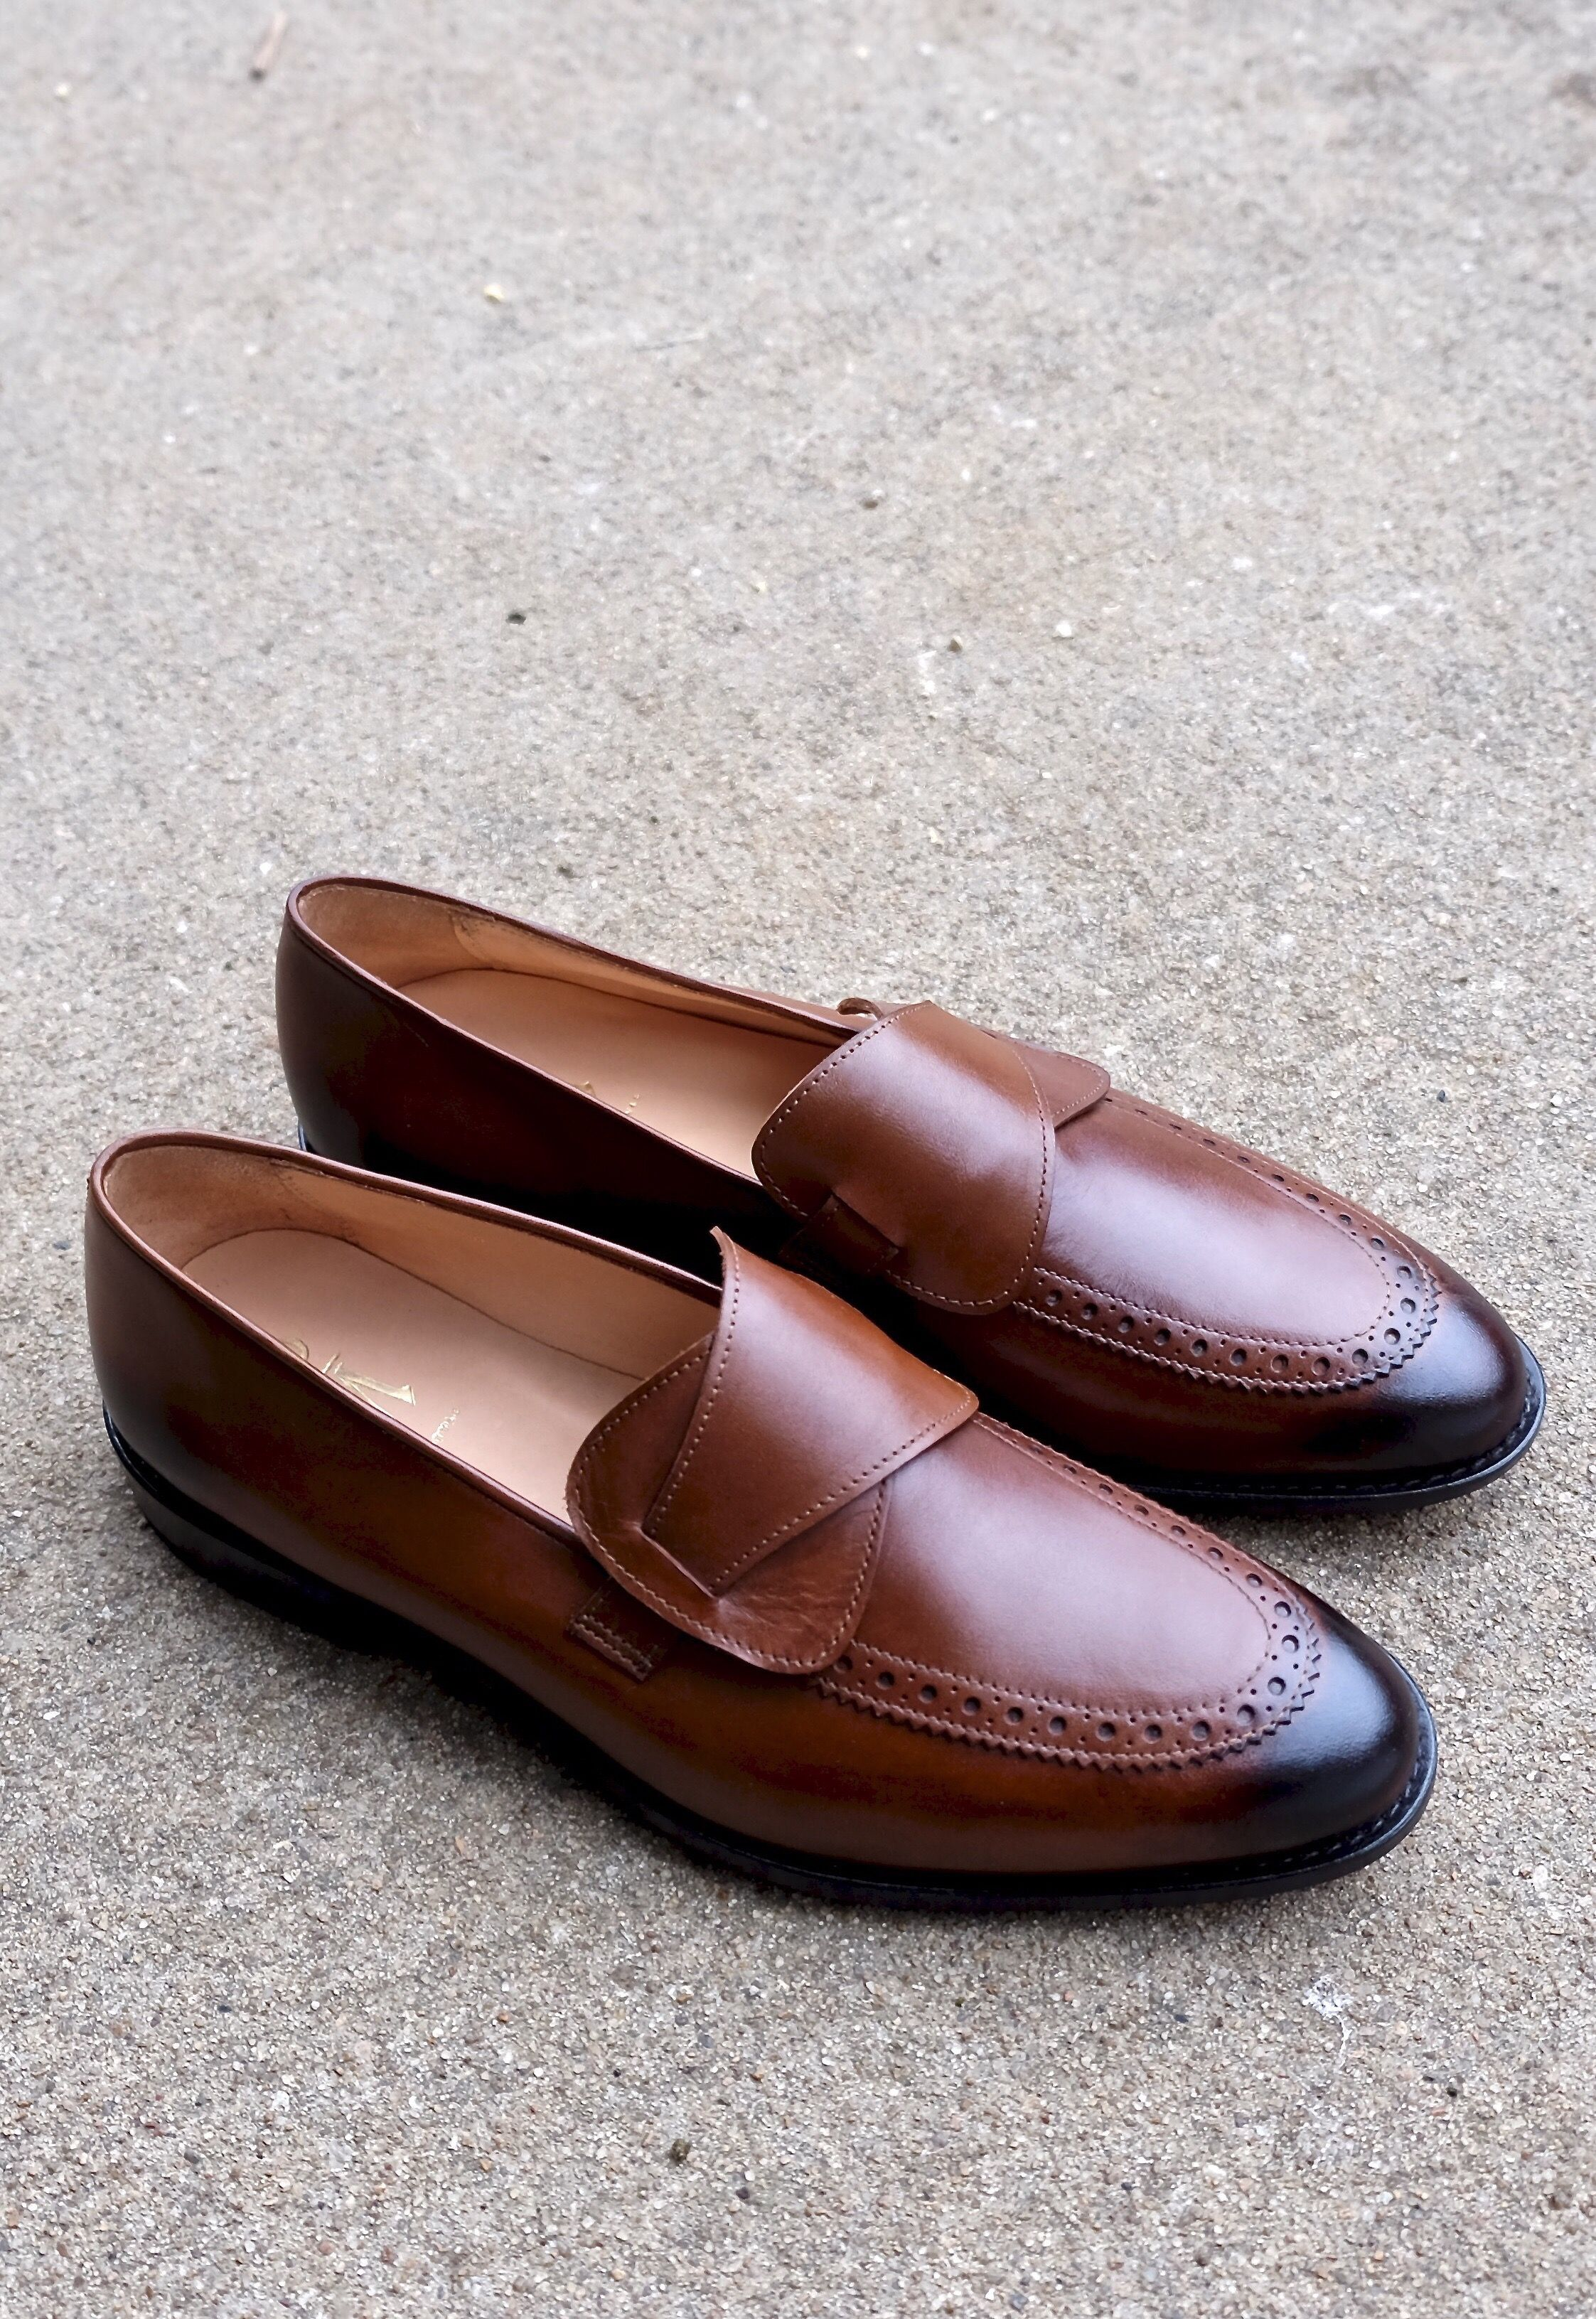 Butterfly Loafers - Brown | Formal